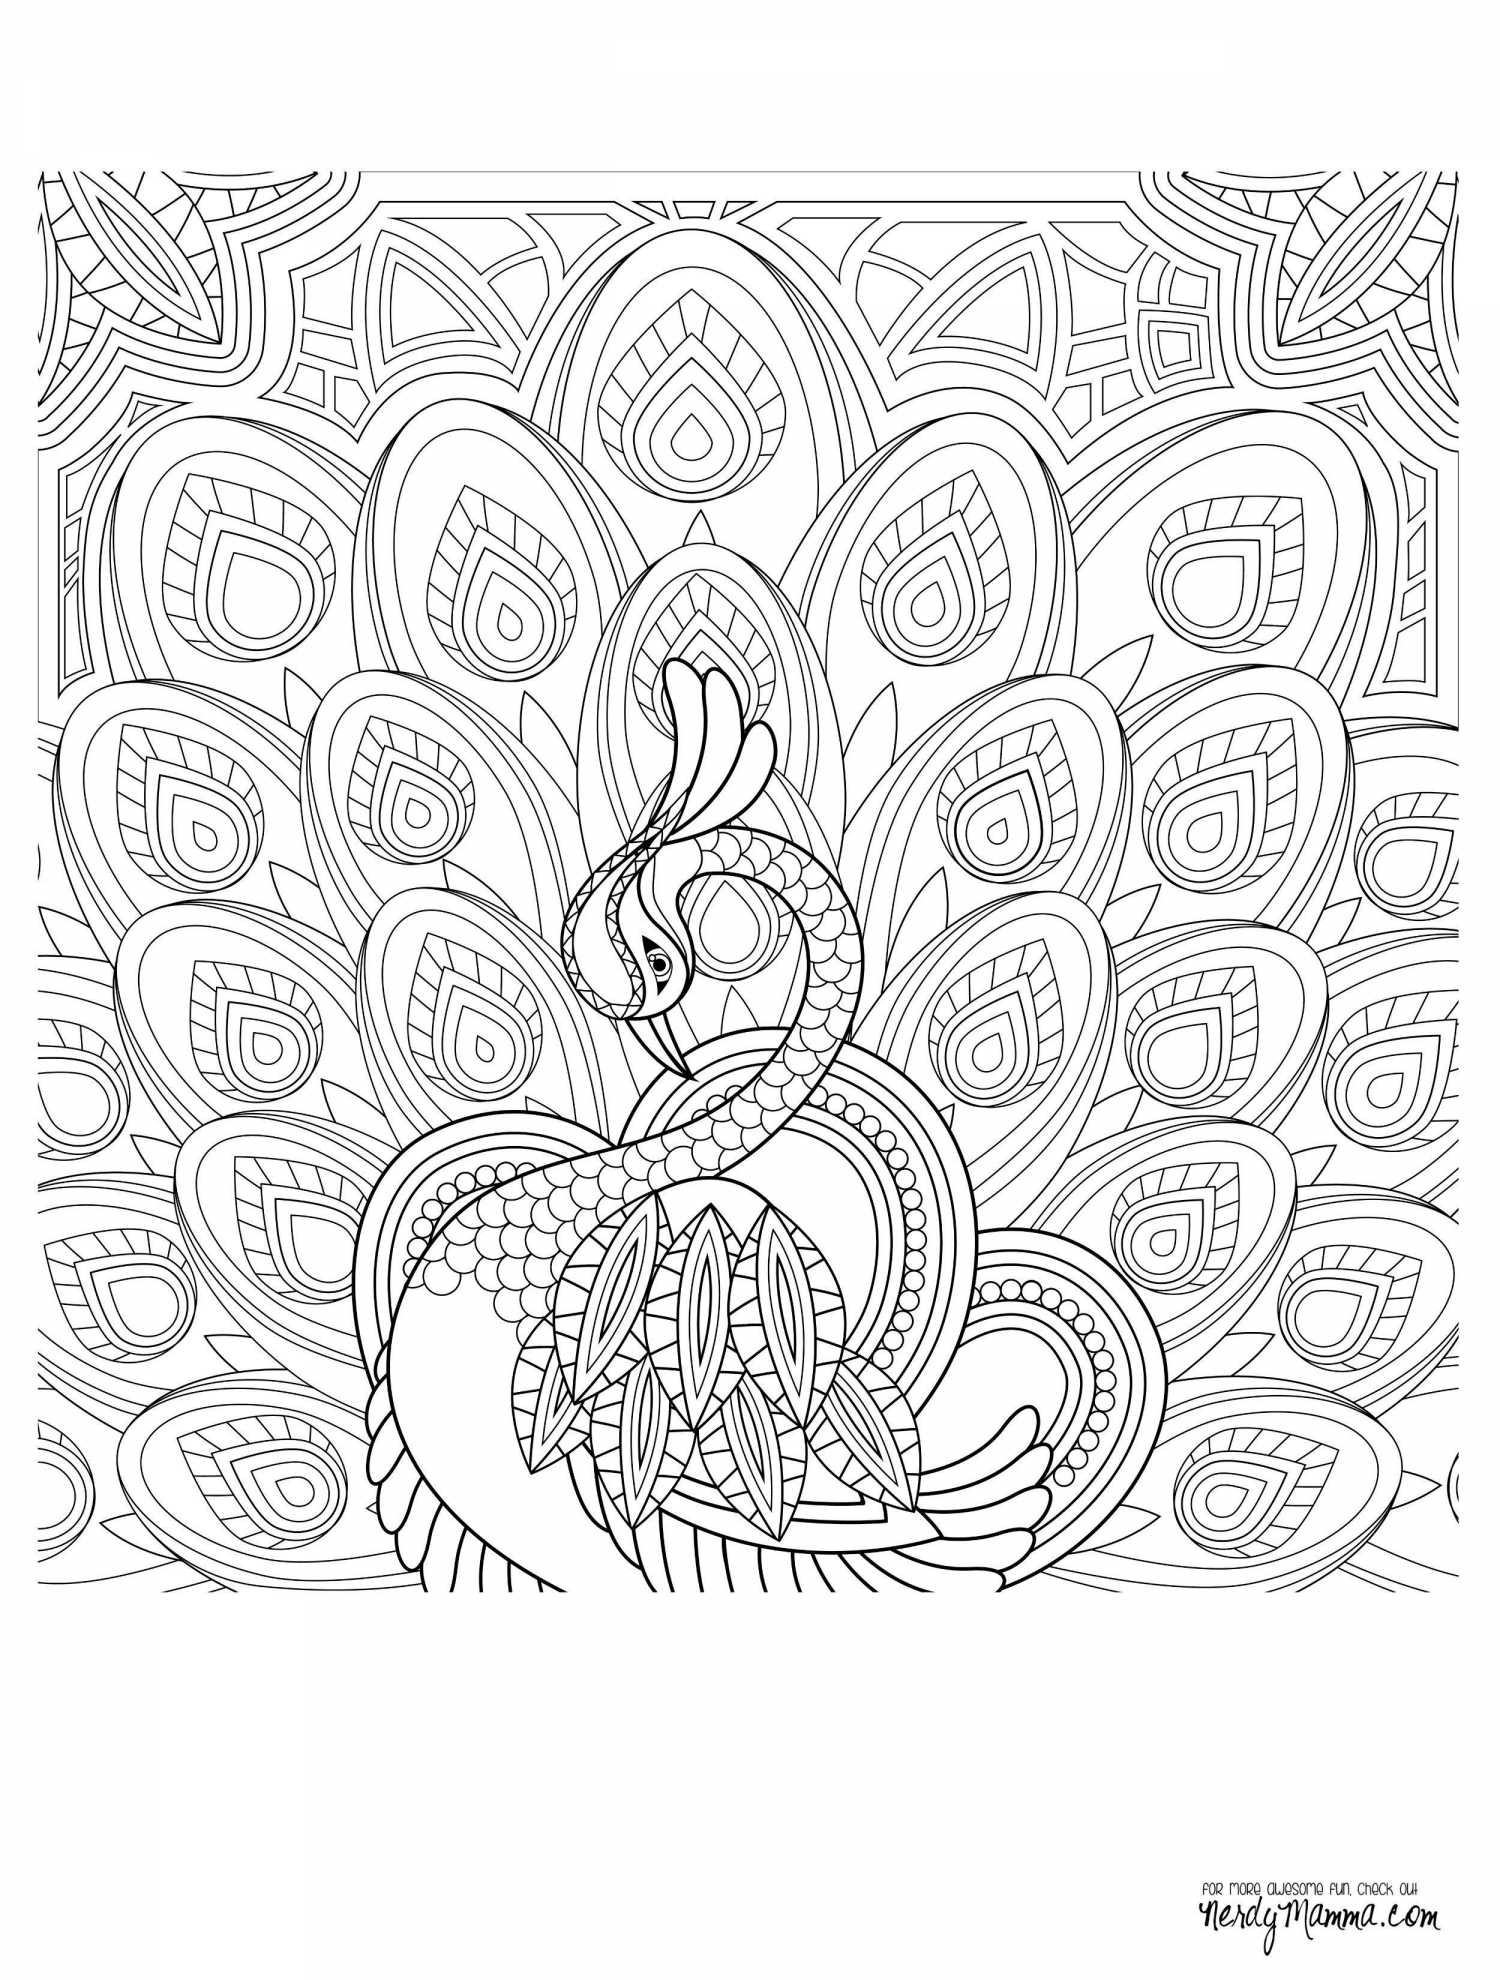 Christmas Colouring Pages Year 1 With Coloring Upper Elementary New